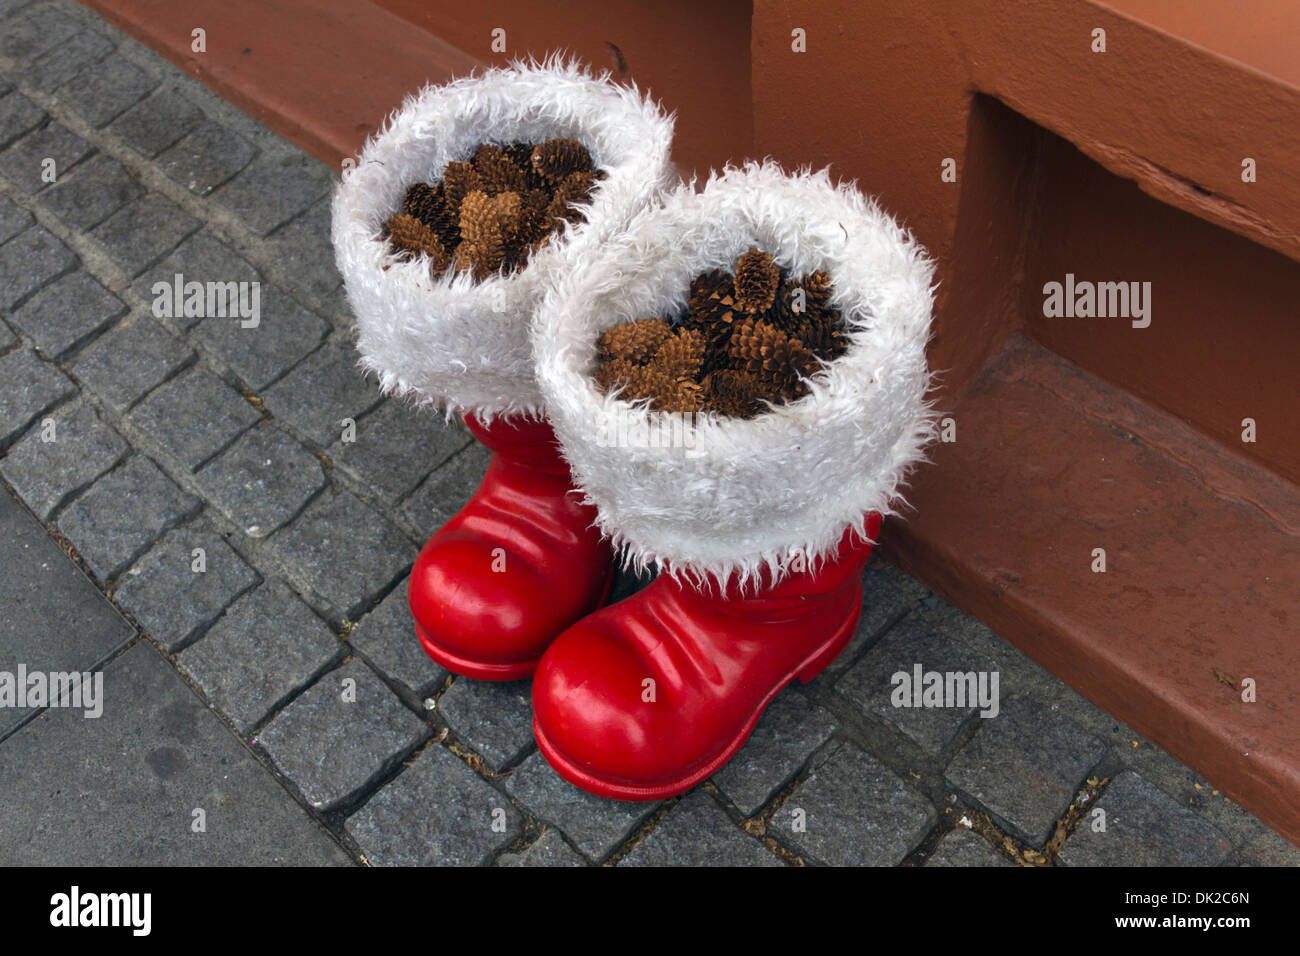 Santa's red boots filled with pine cones left outside a Christmas shop in Reykjavik, Iceland - Stock Image